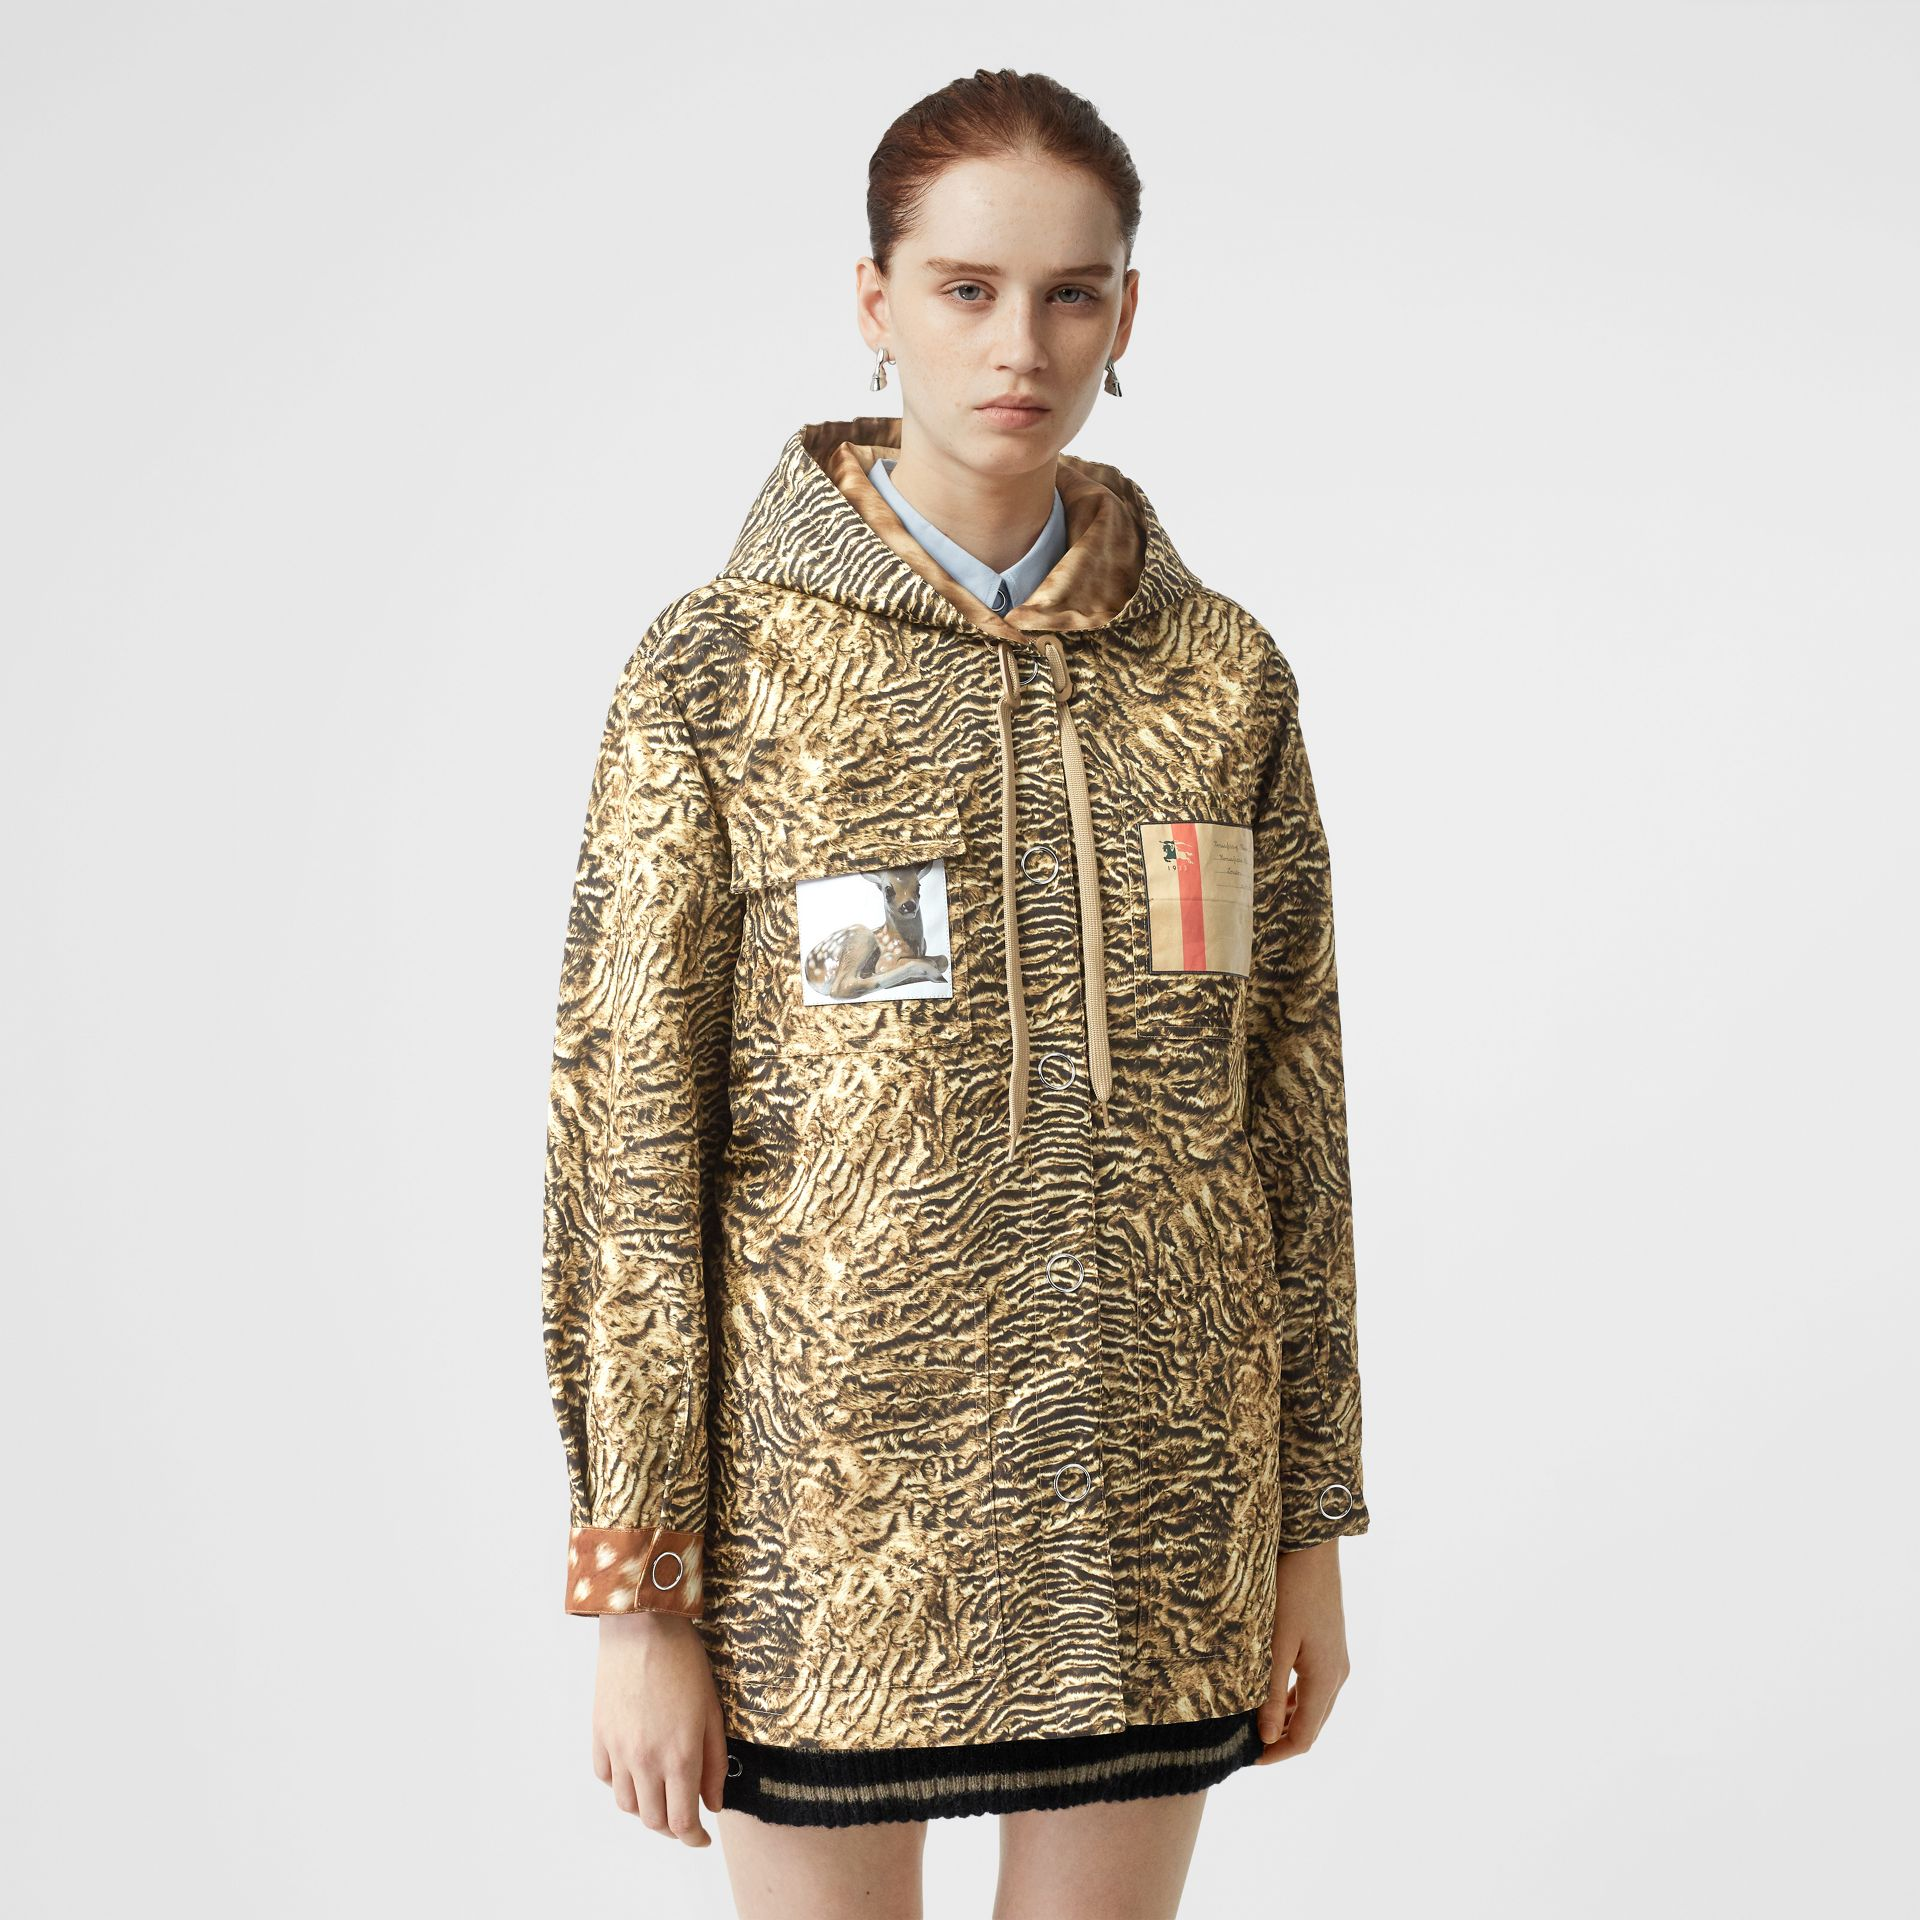 Tiger Print Lightweight Hooded Jacket in Beige - Women | Burberry - gallery image 5